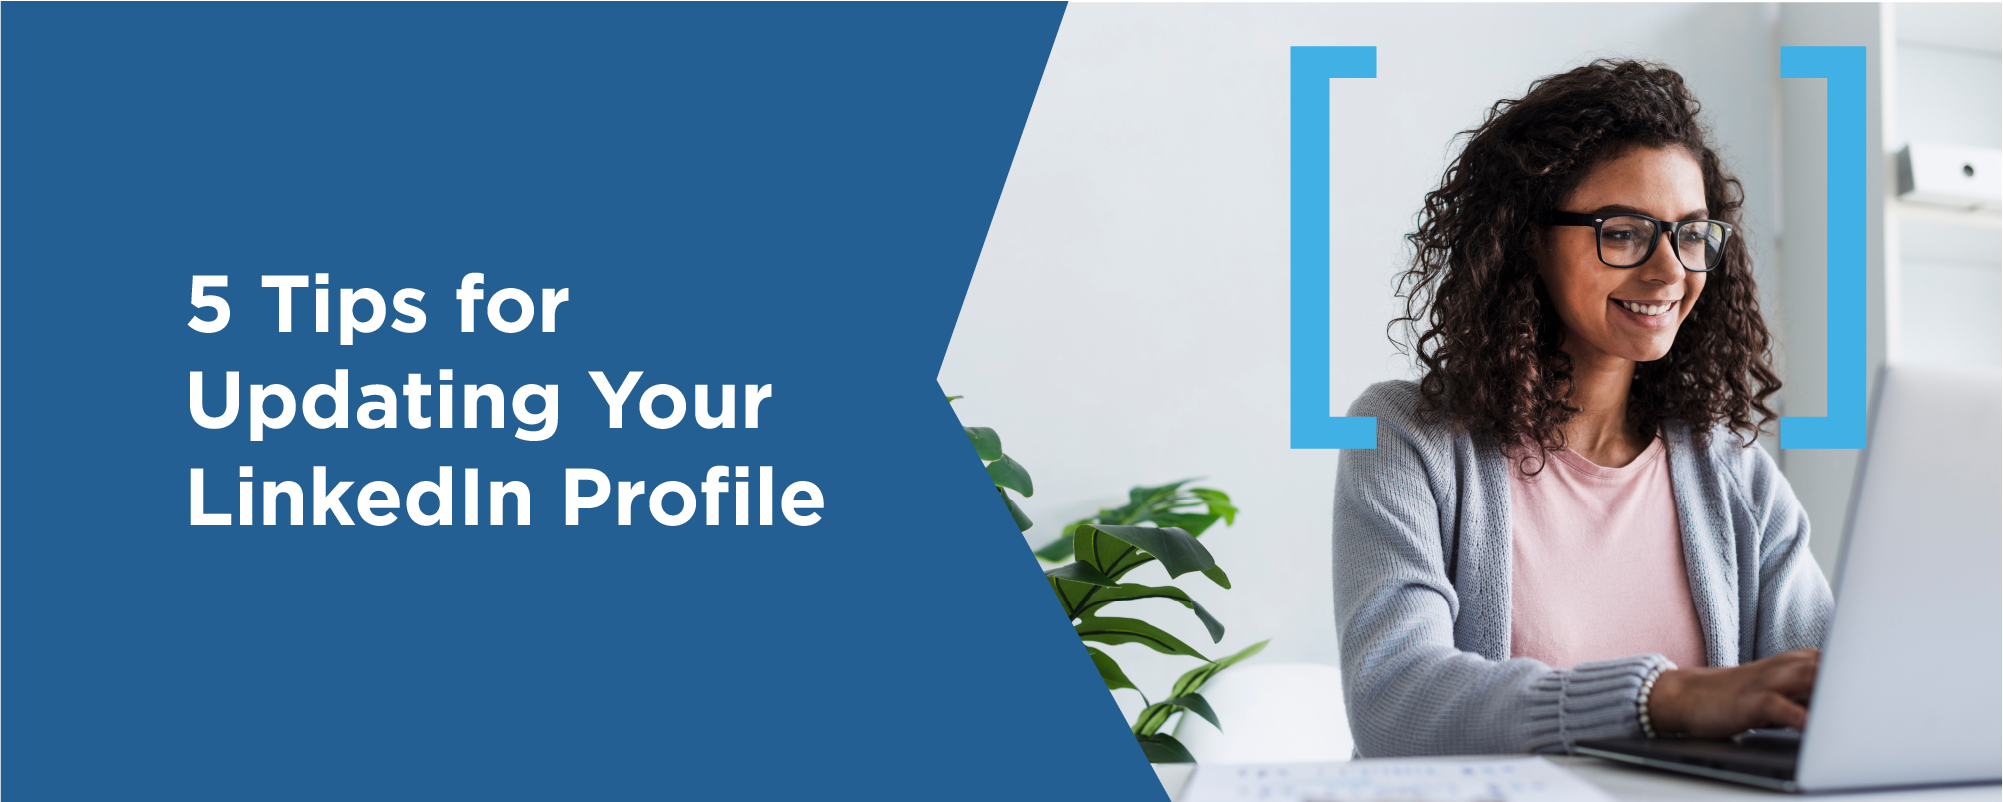 5 tips for updating your linkedin profile.